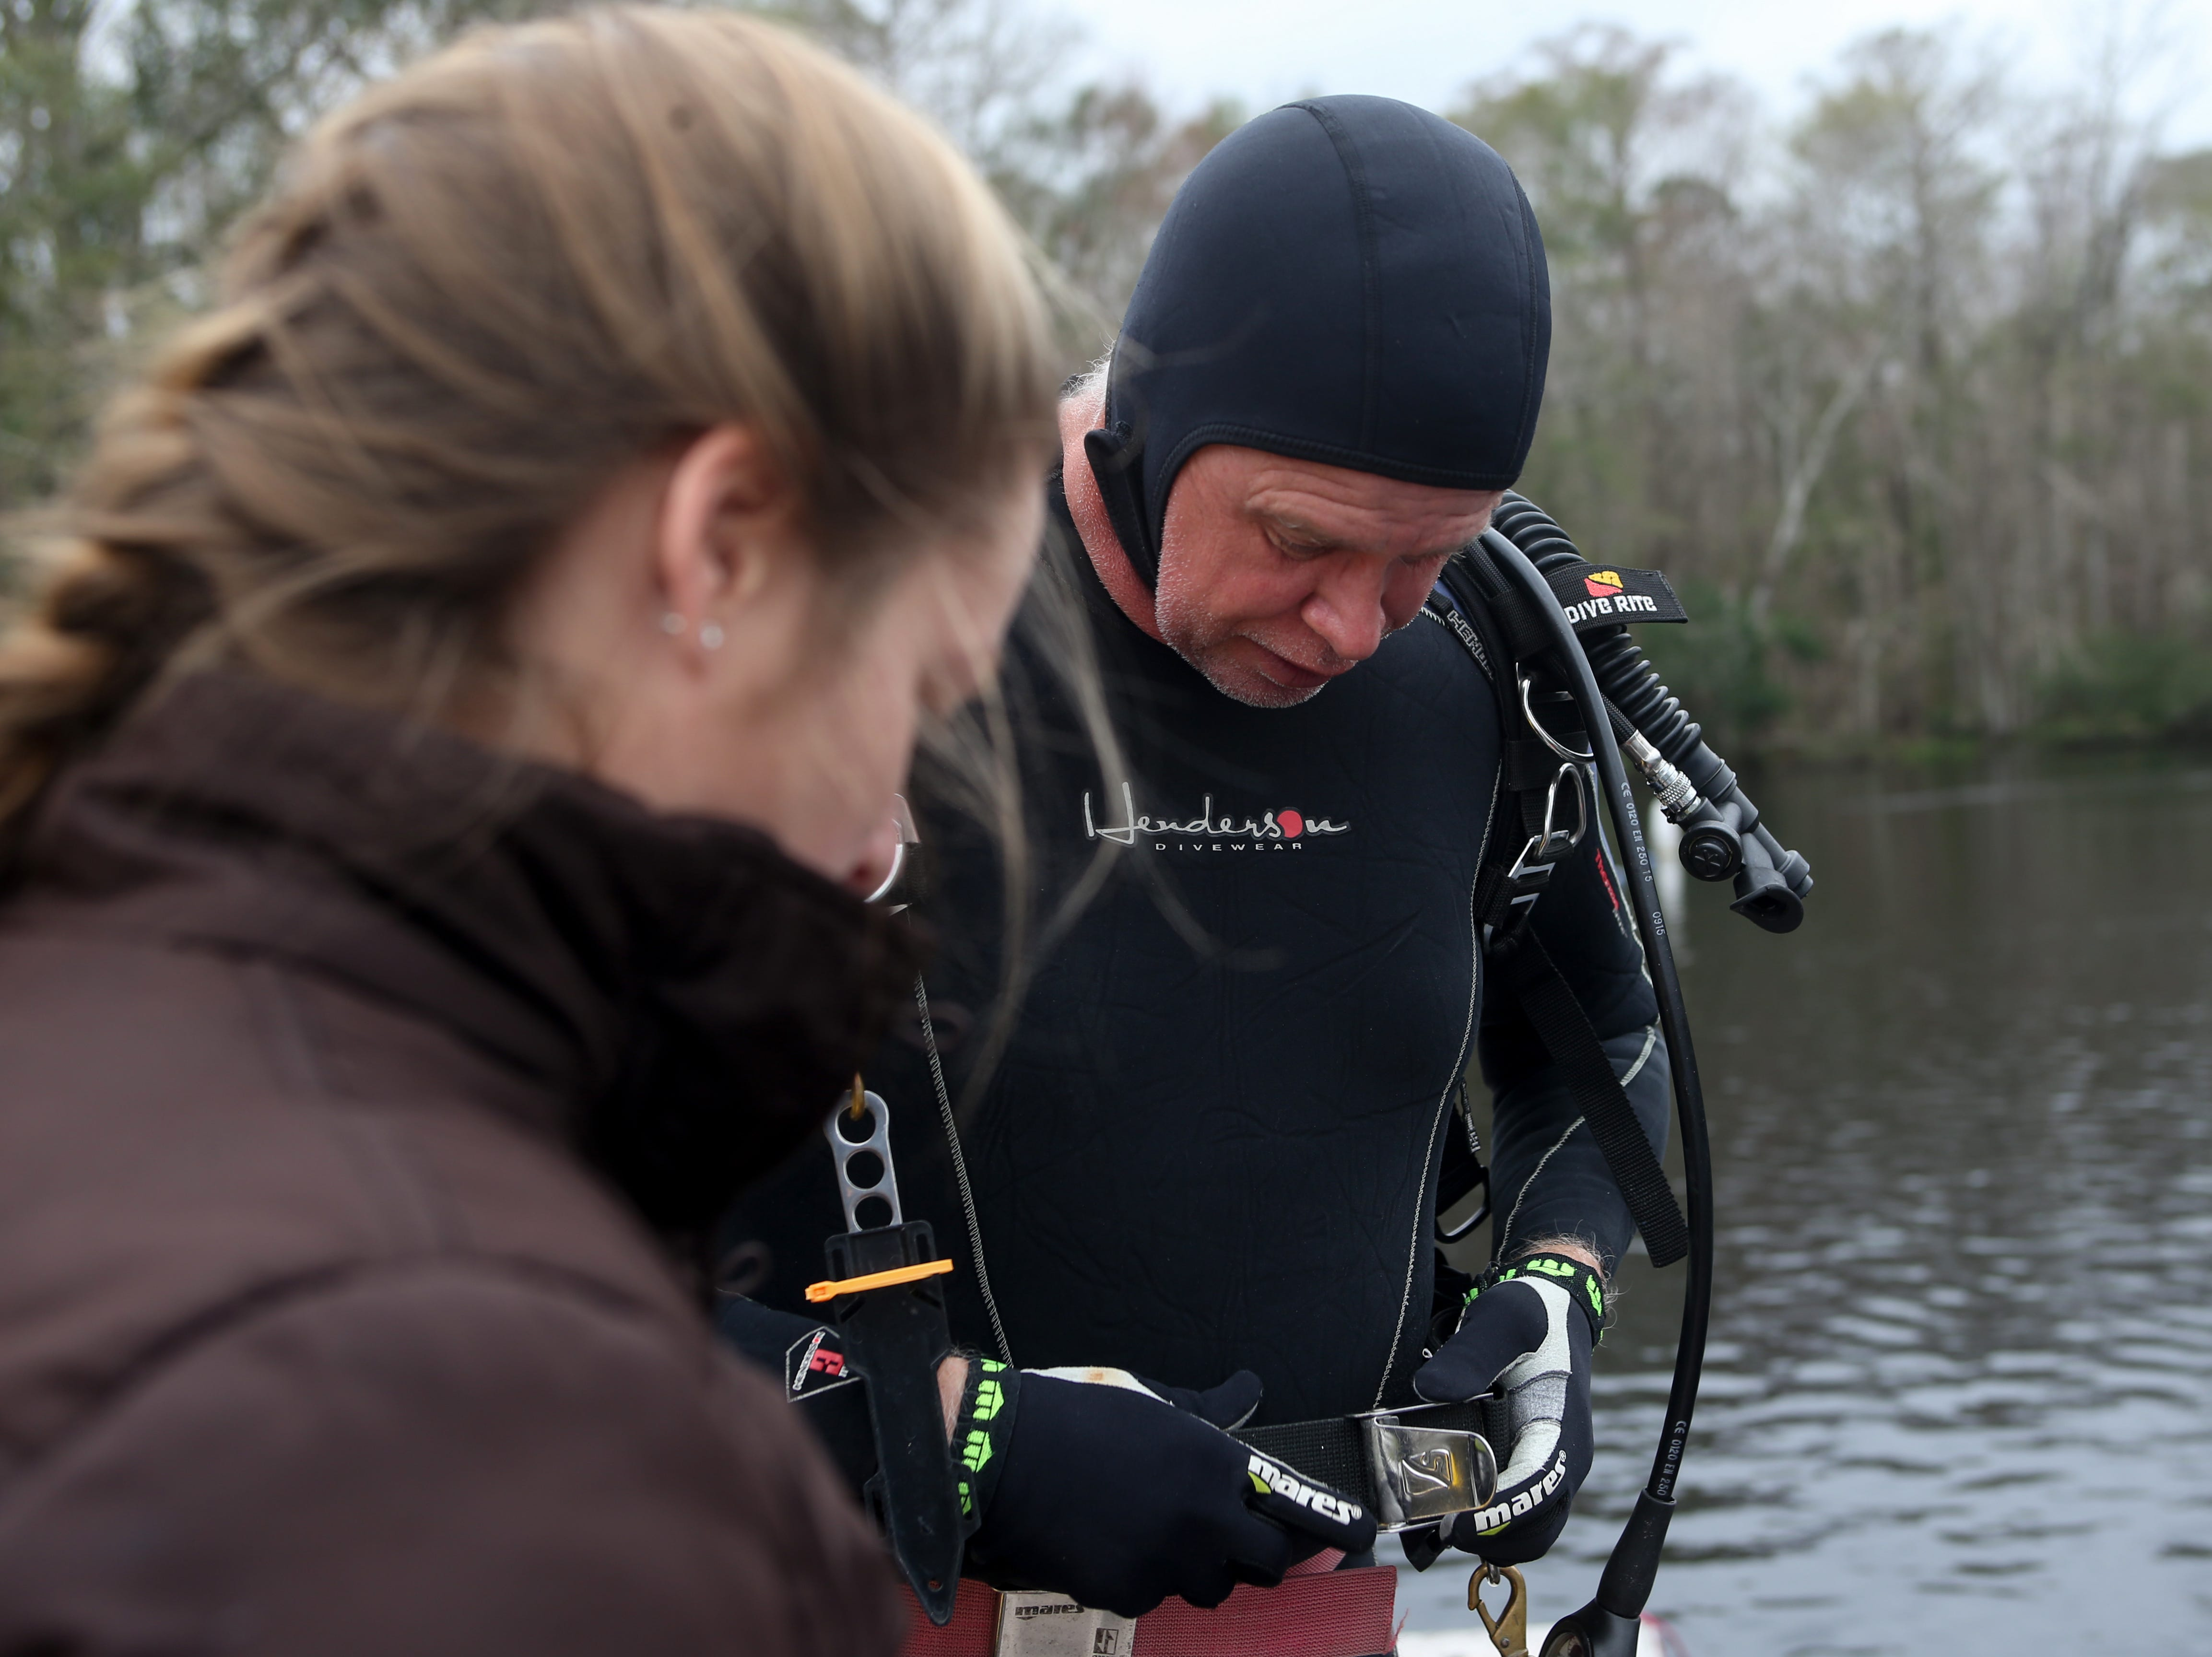 Co-principal Investigator Andy Hemmings prepares to scuba dive to the bottom of the Wakulla River to observe the remains of a mastodon Monday, Jan. 14, 2019.